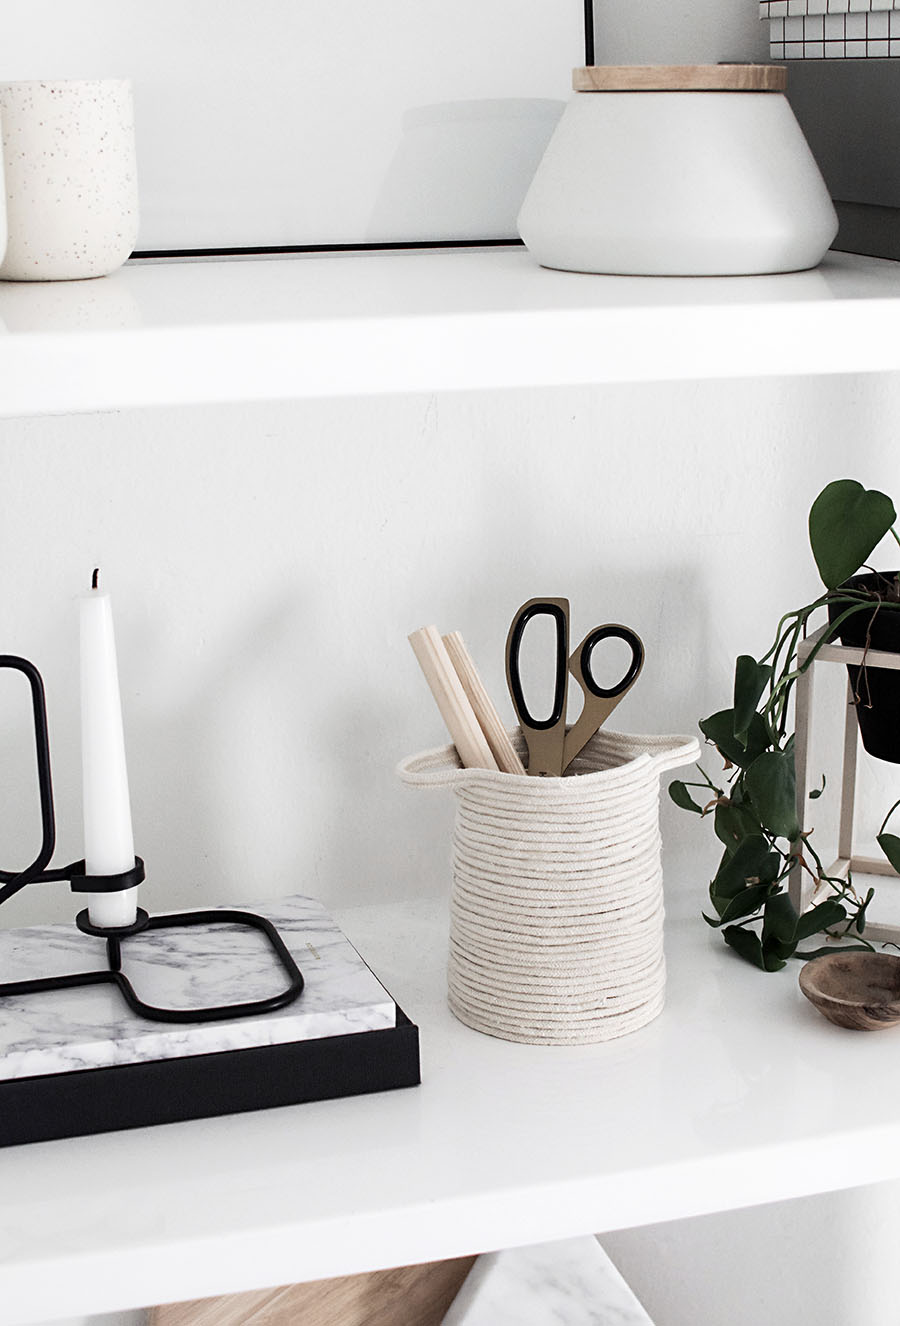 DIY small rope basket for pens and pencils